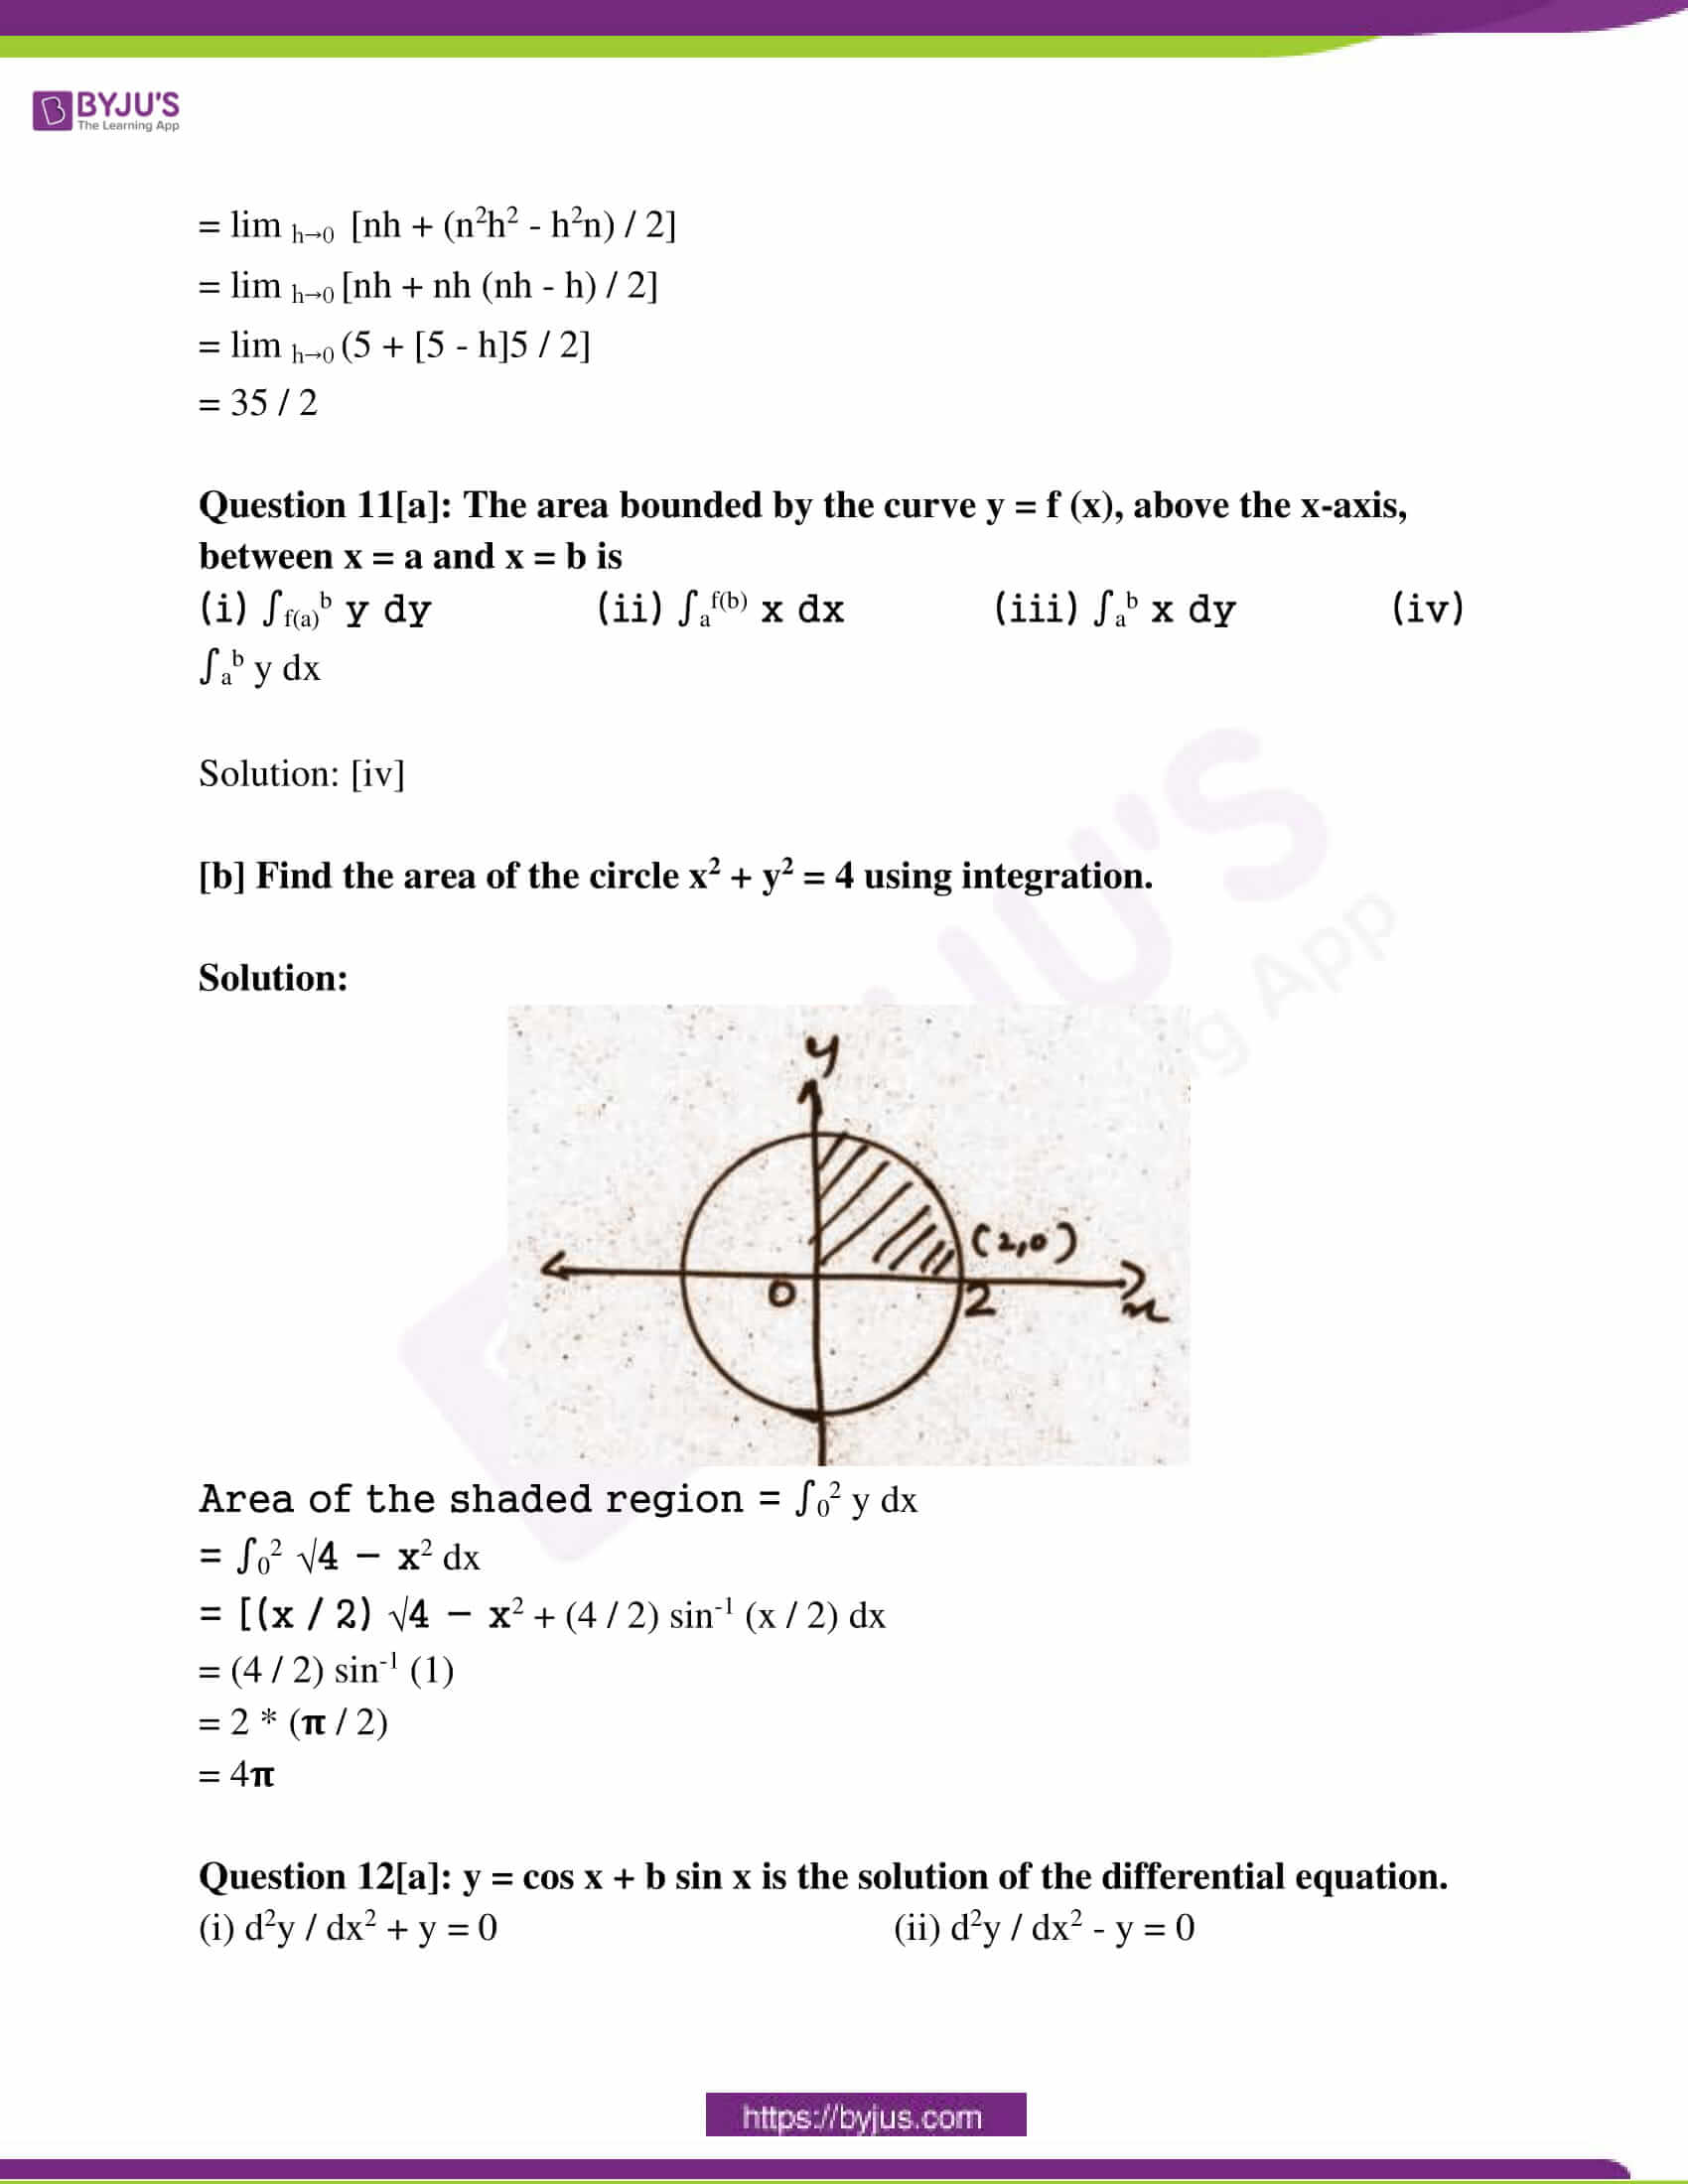 kerala class 12 examination question paper solutions march 2016 11